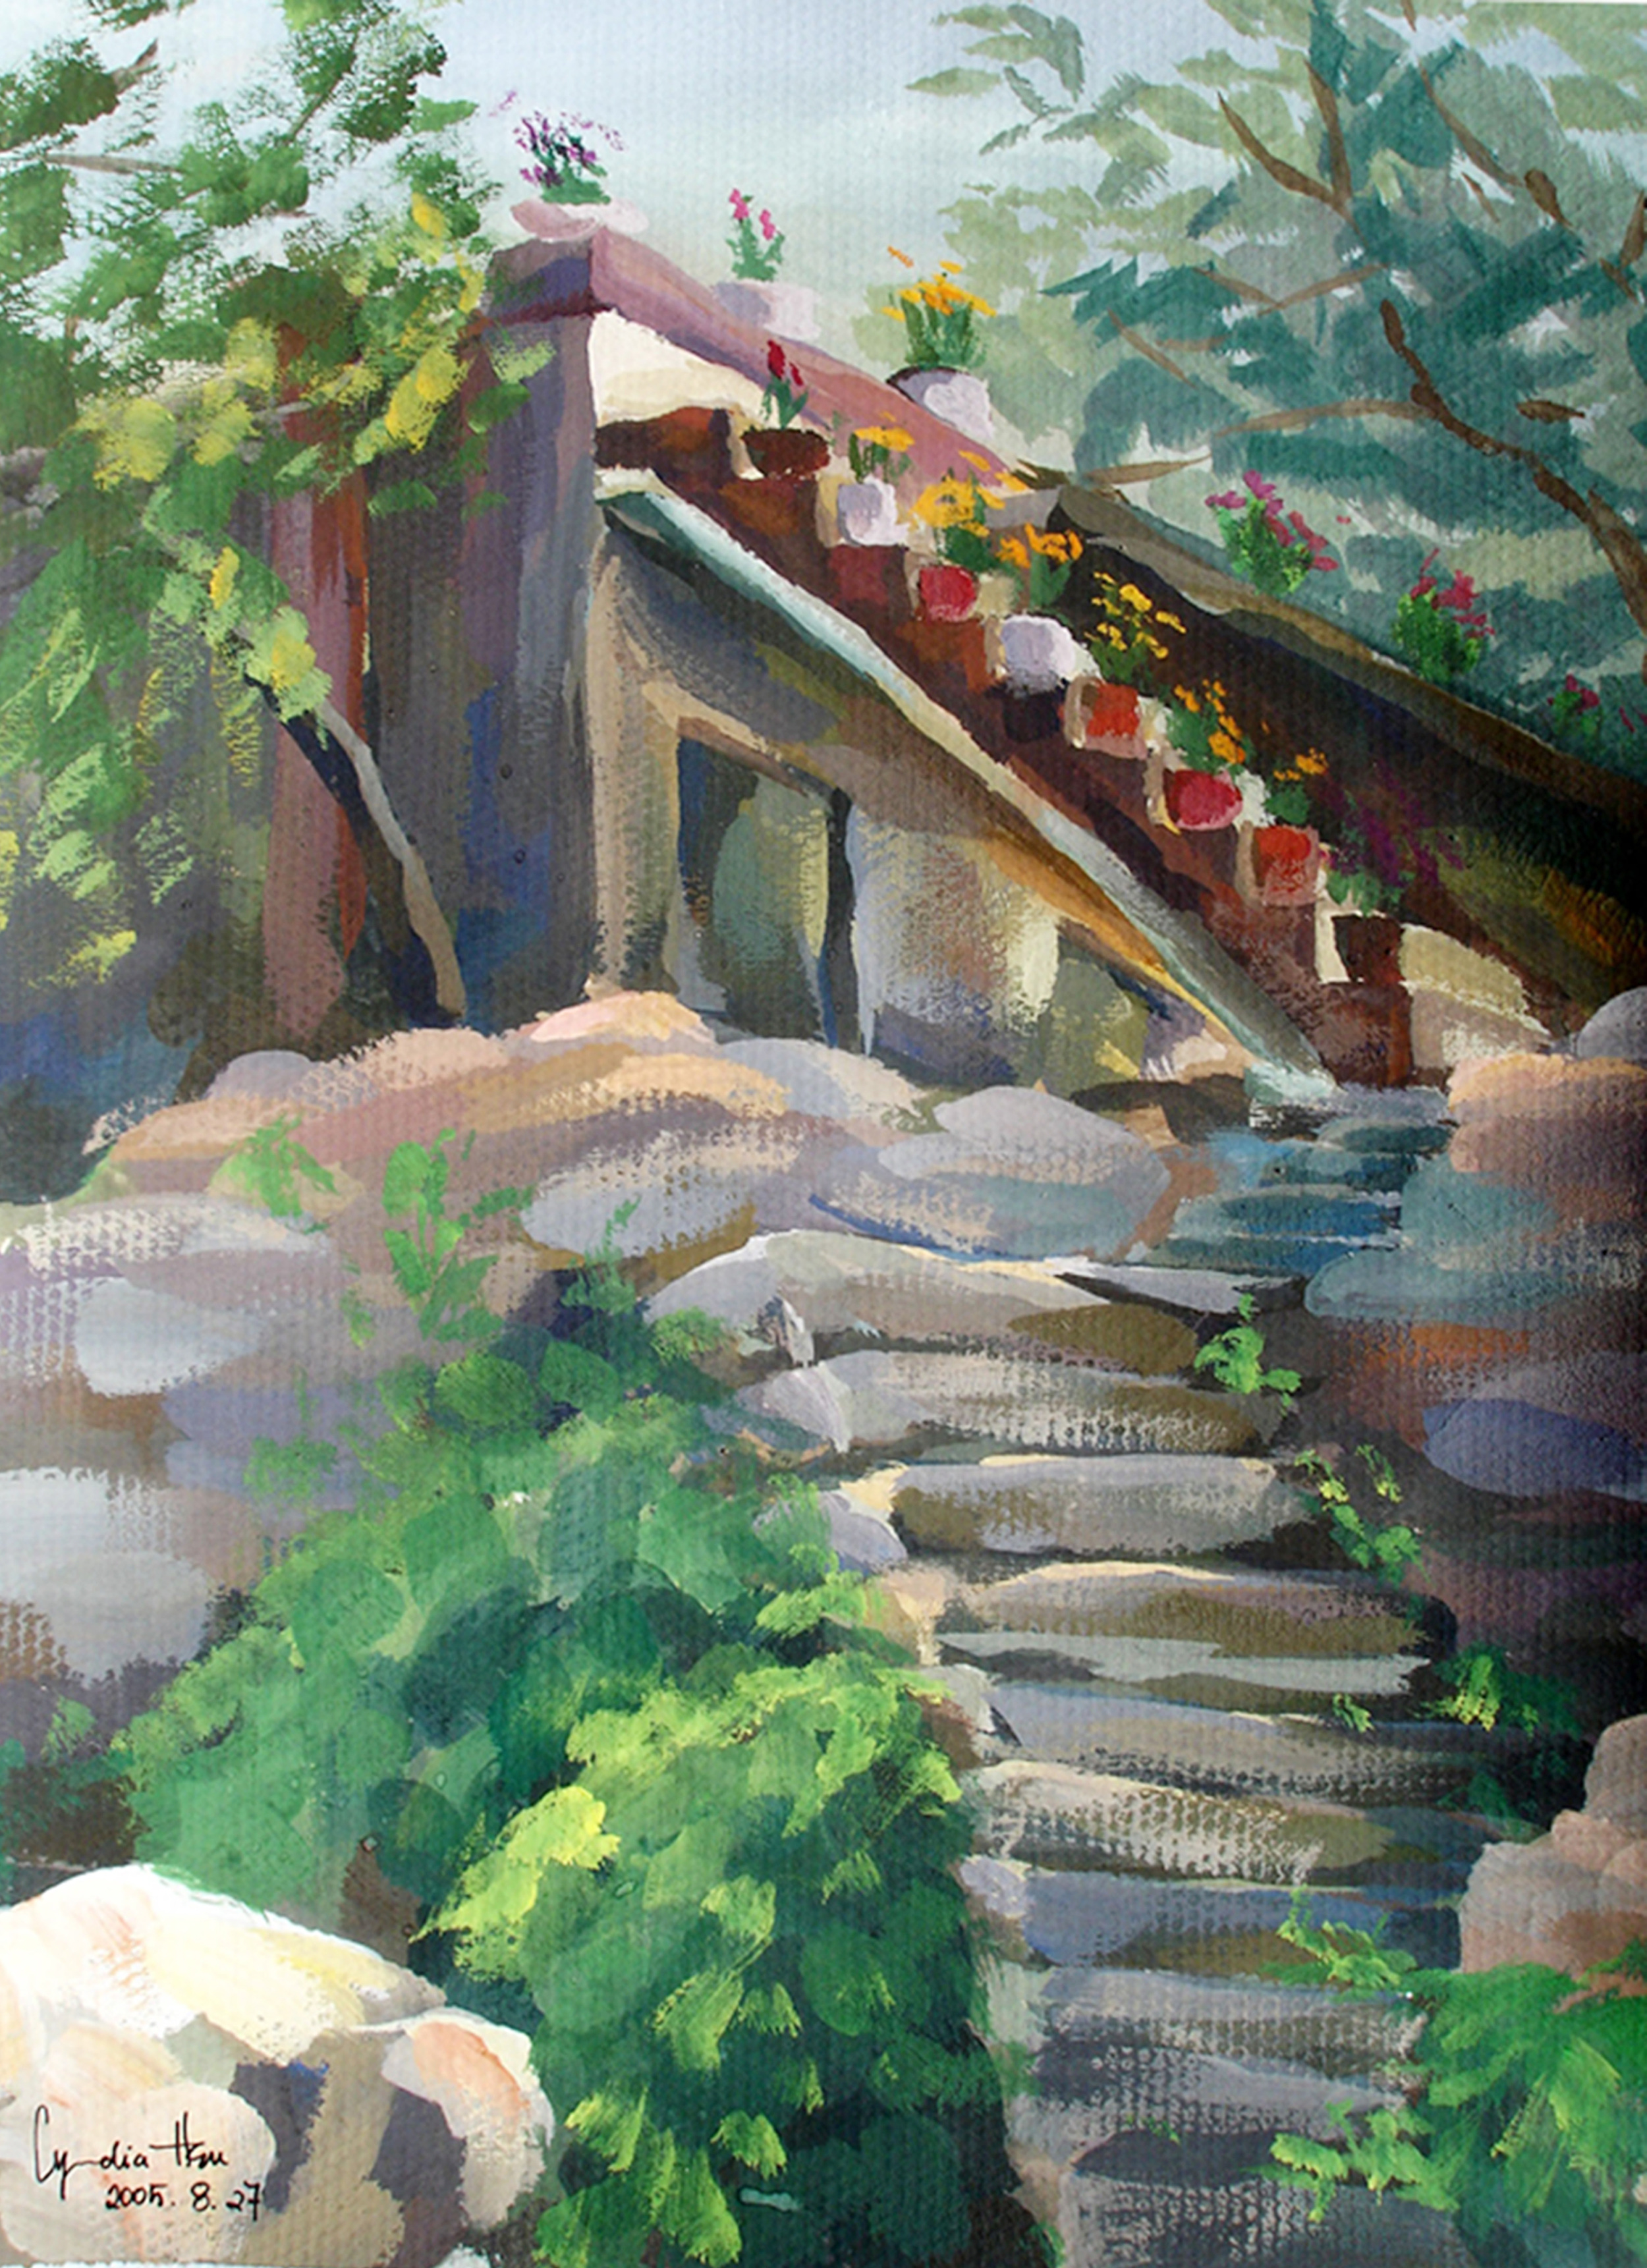 A collection of gouache paintings from a village in the mountains of Henan, China